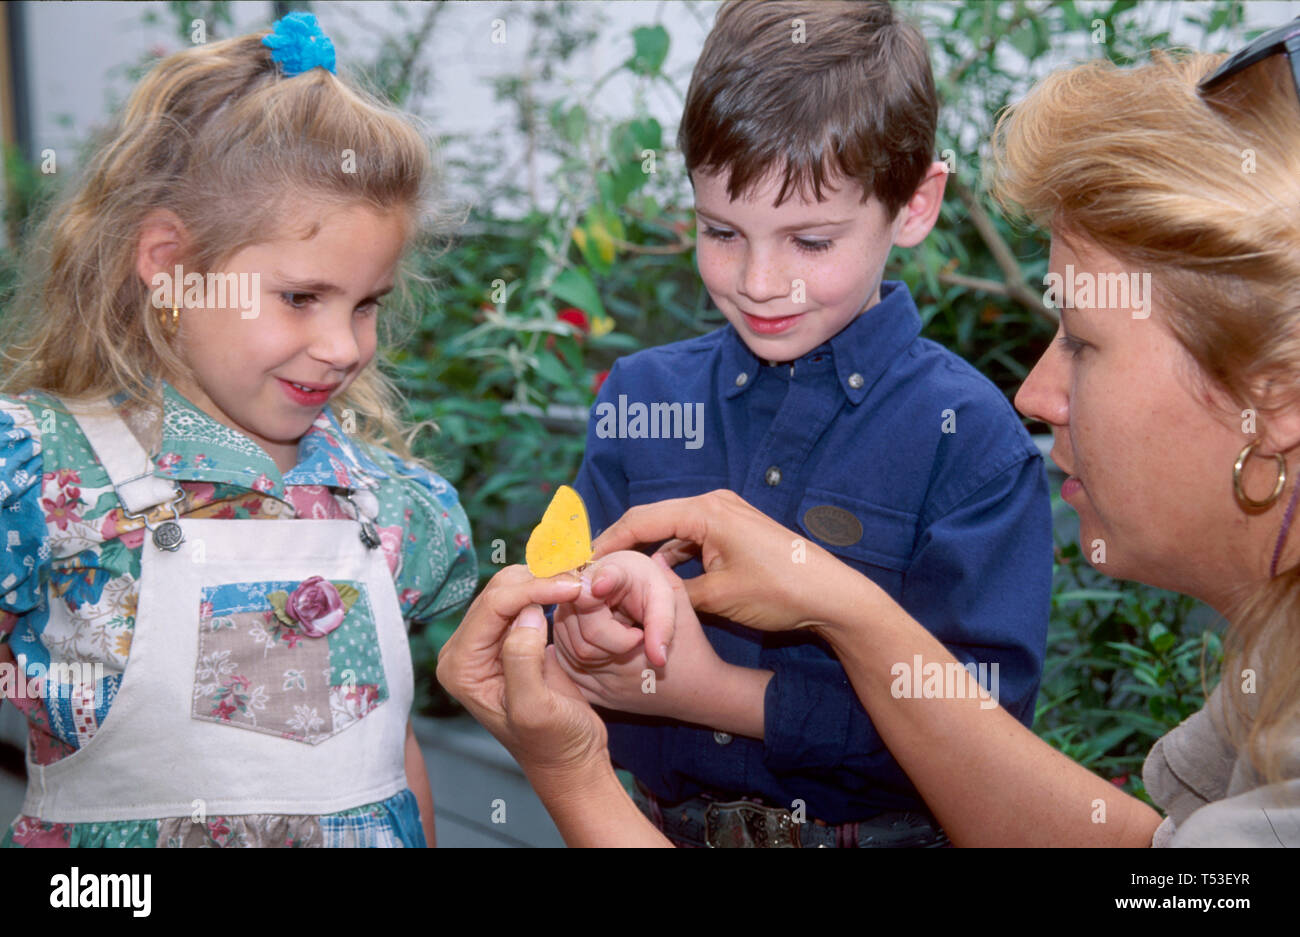 Tampa Florida Museum of Science & Industry hands on scientific exploration young visitors butterfly exhibit Stock Photo